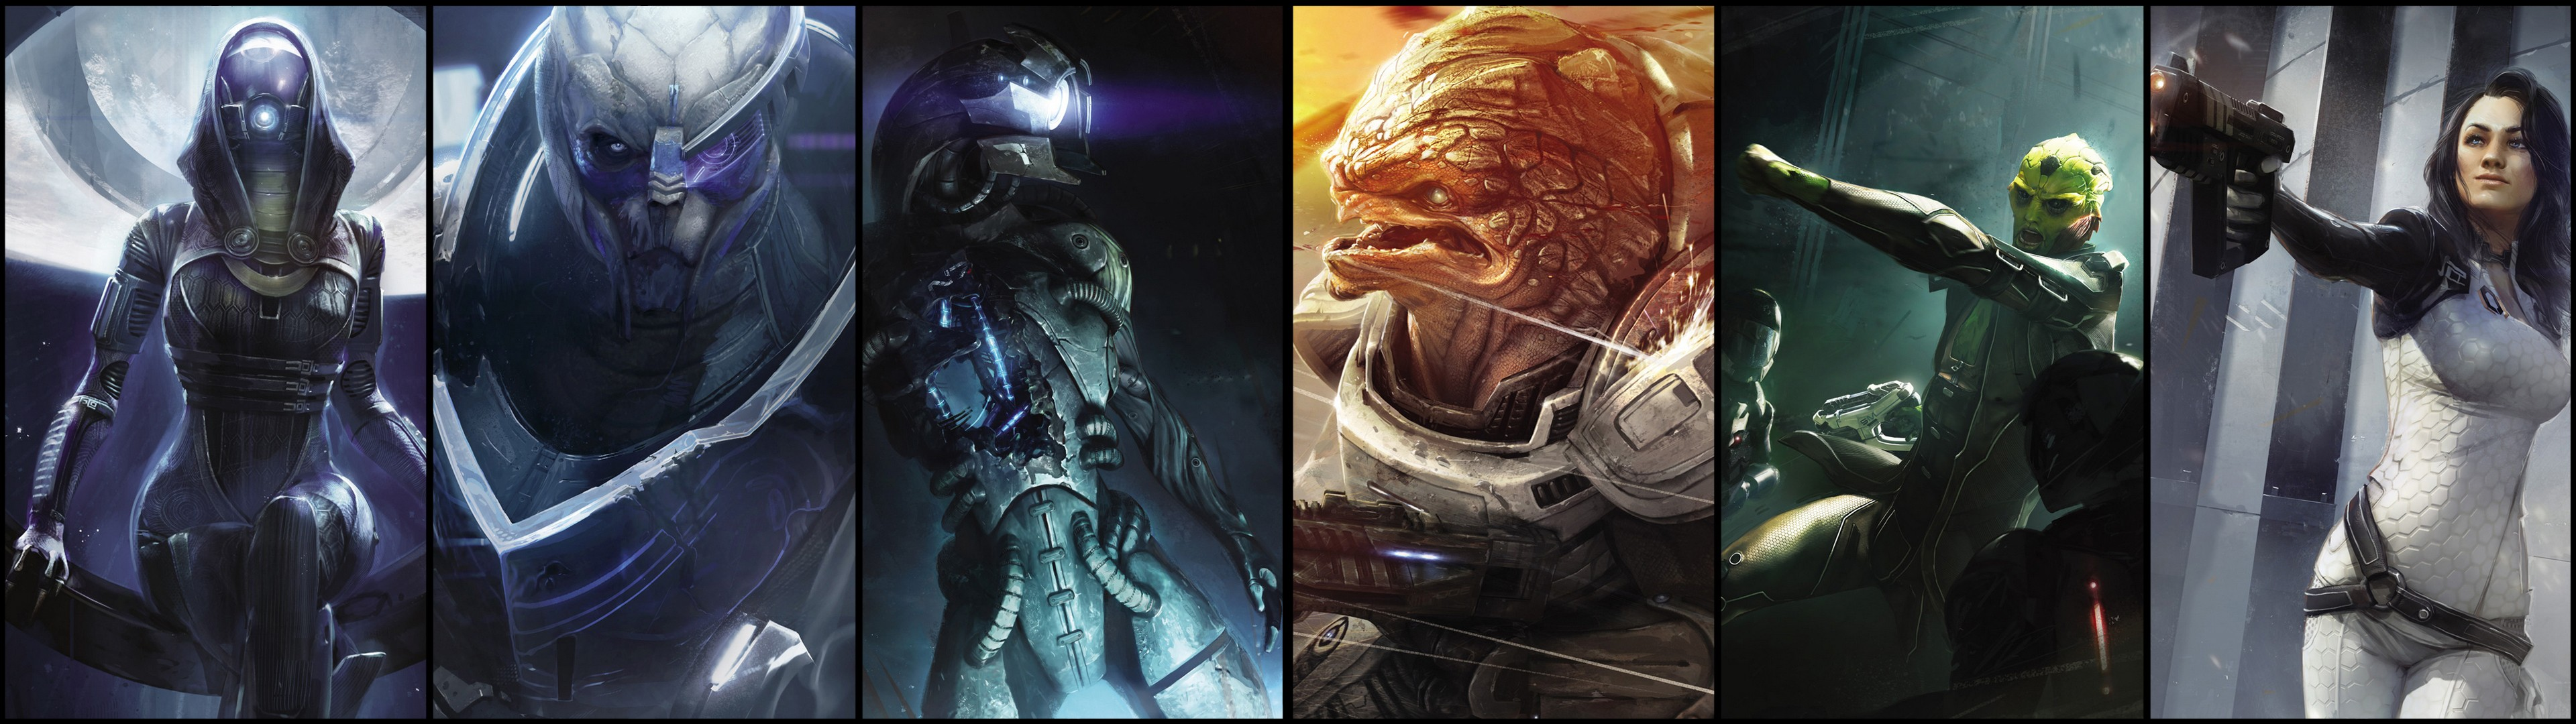 L Double Monitor Girl Wallpapers Mass Effect 2 Fond D 233 Cran Hd Arri 232 Re Plan 3840x1080